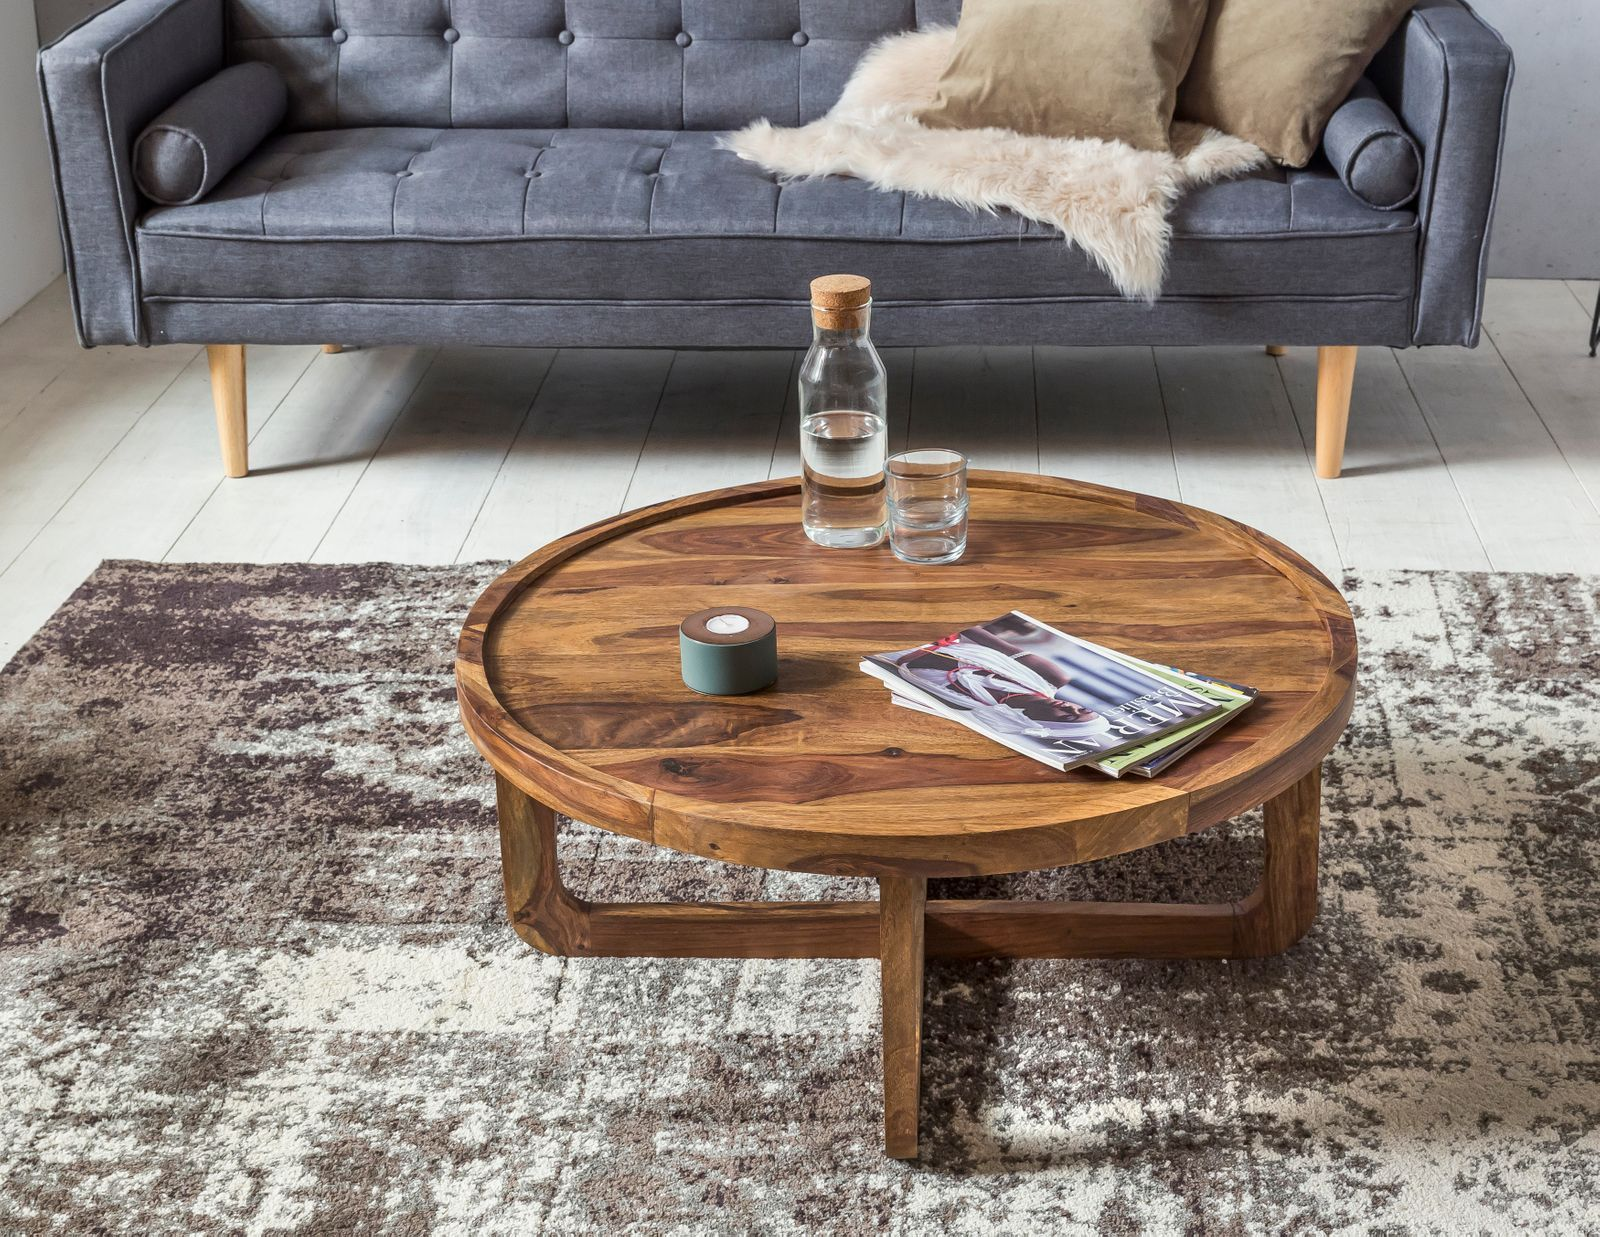 Couchtisch Curved Sheesham Holz Stone Buy Solid Wood Curved Round Coffee Table Online New Launch Tv